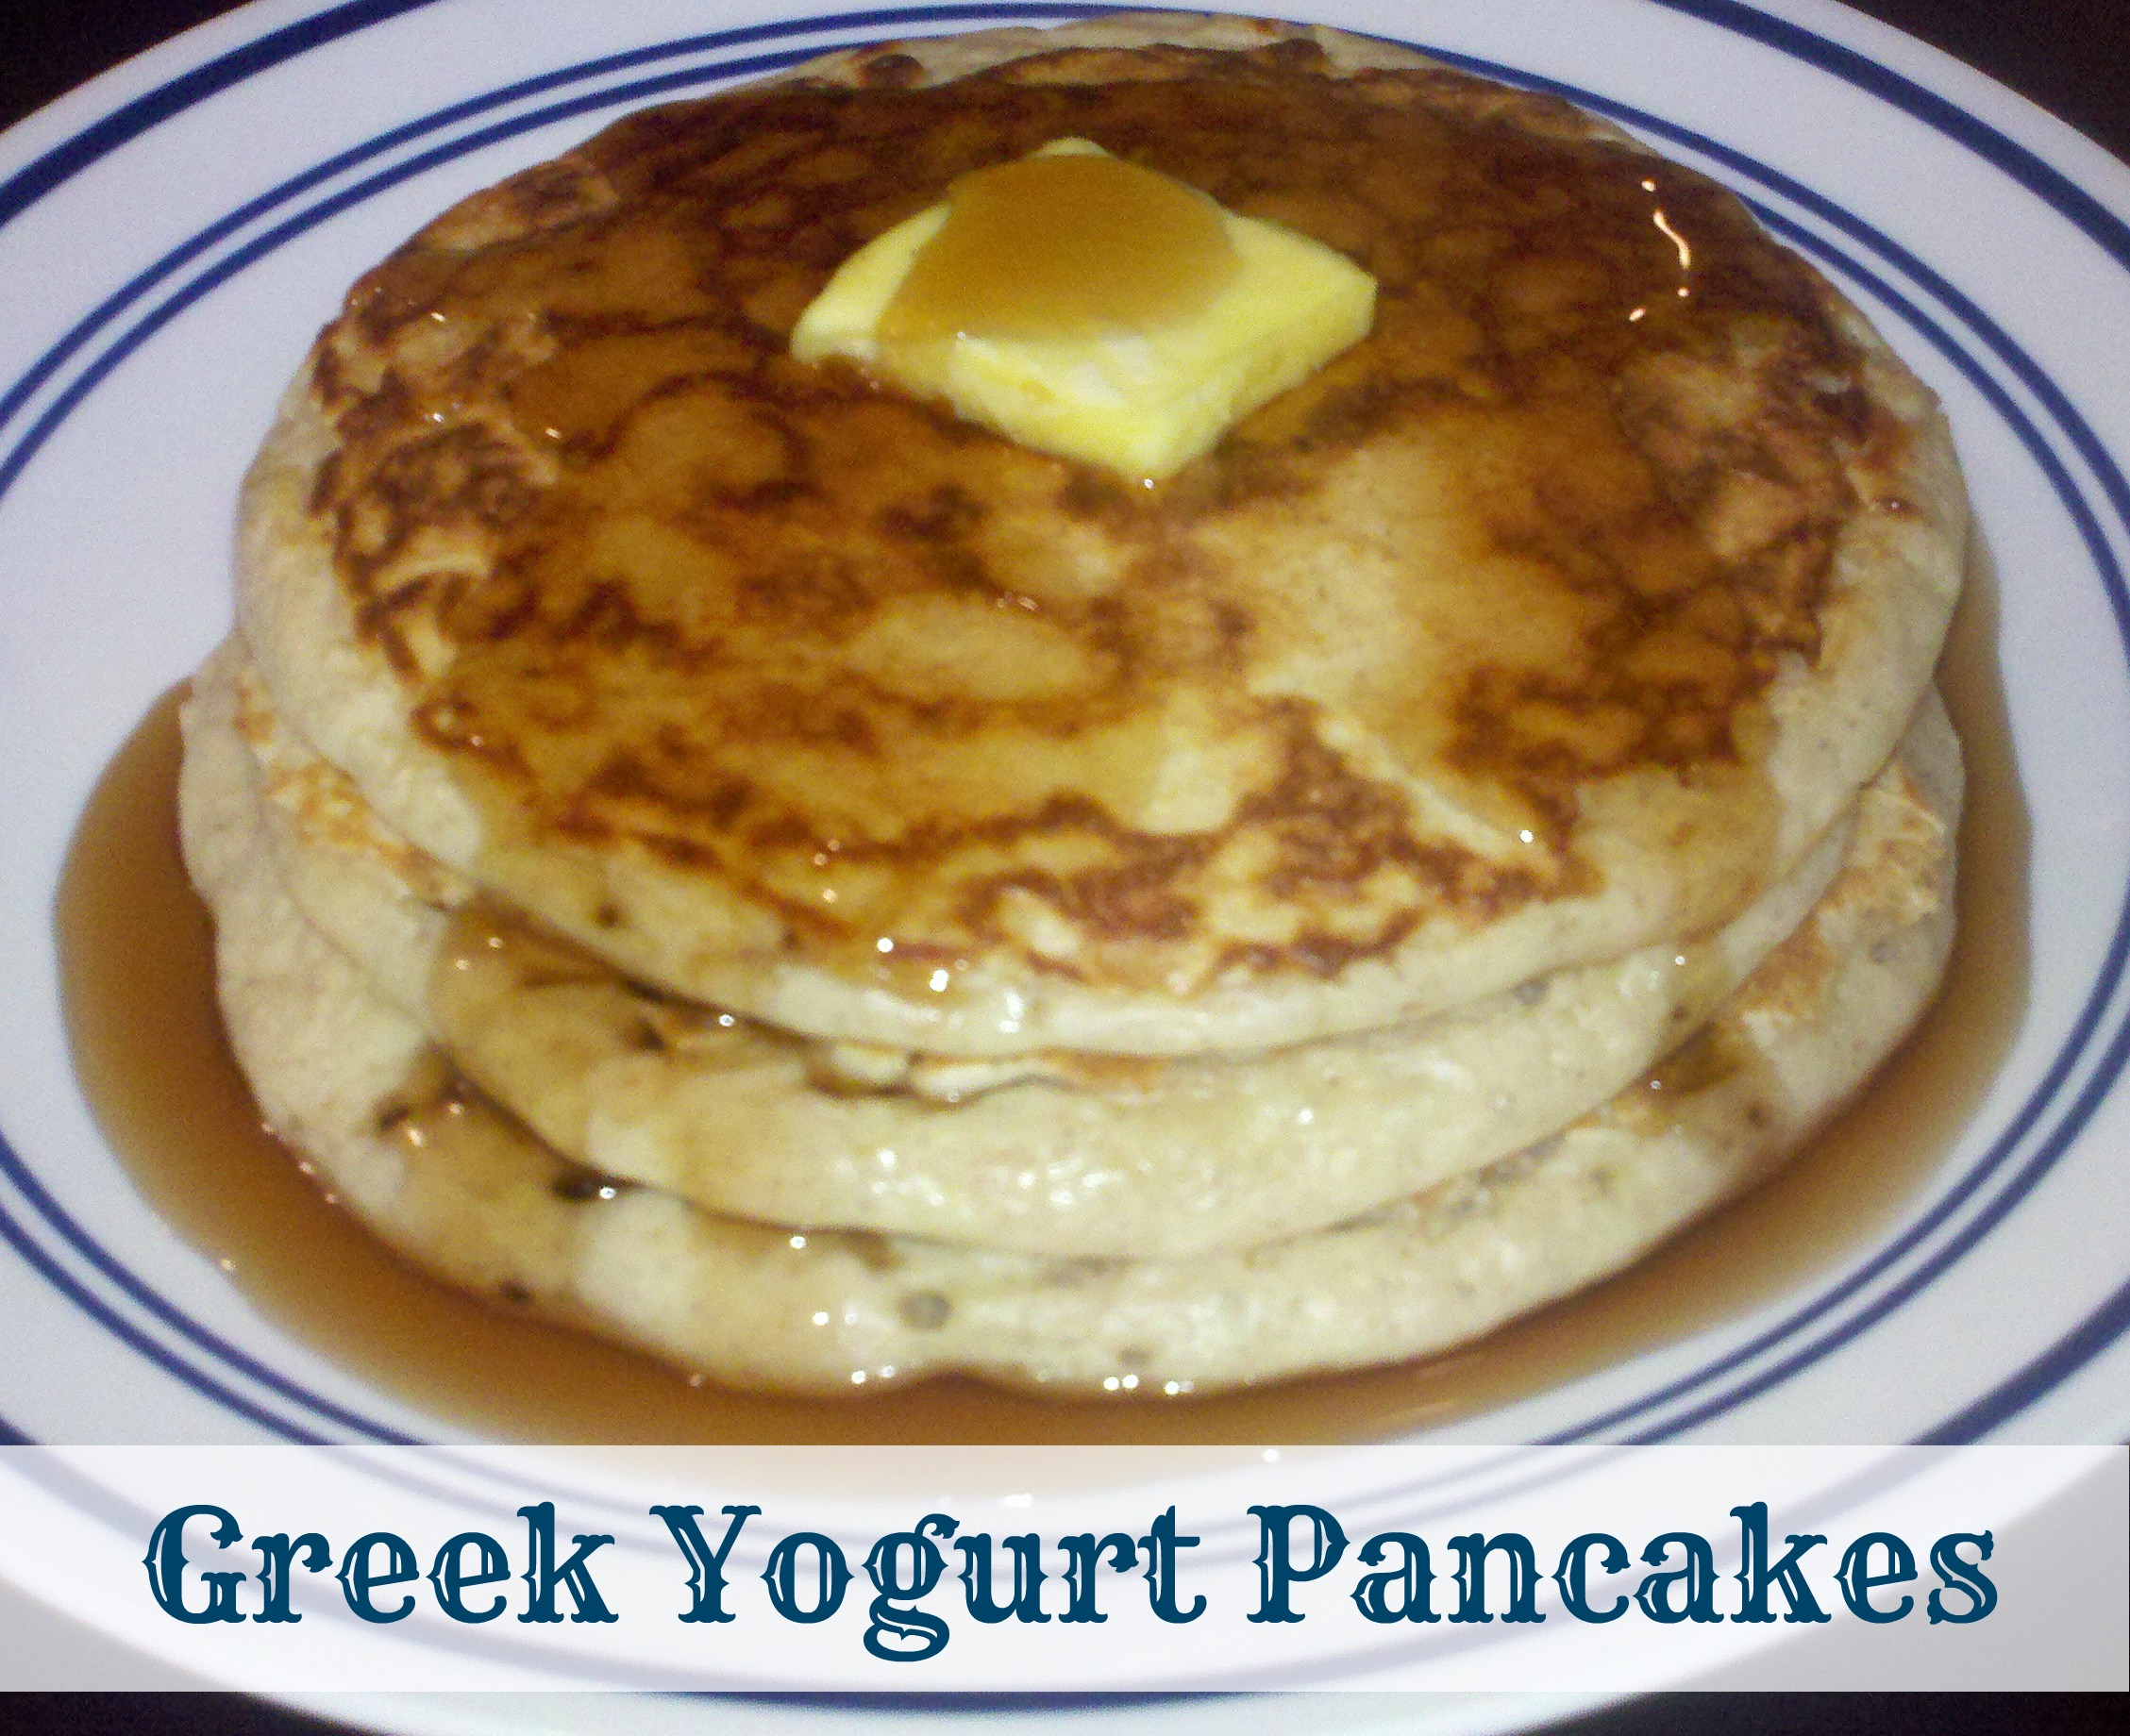 Tasty Tuesday: Greek Yogurt Pancakes | Gettin' My Healthy On